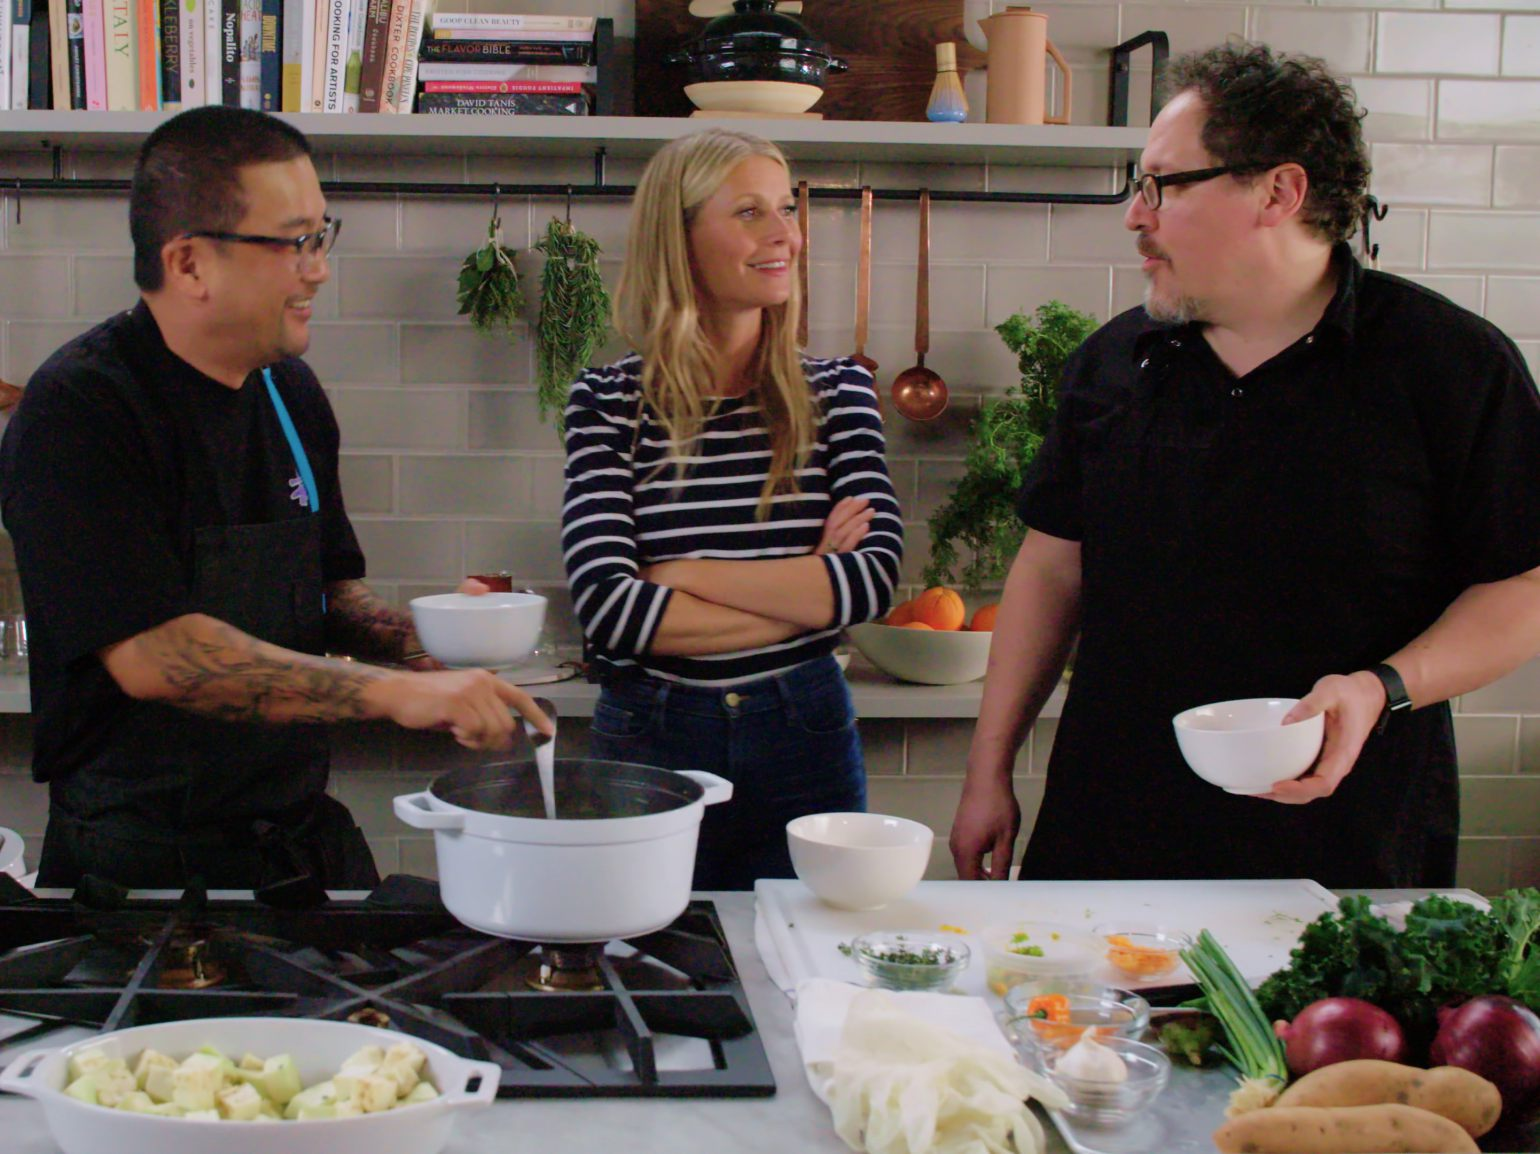 What's Streaming on Netflix HBO - The Chef Show